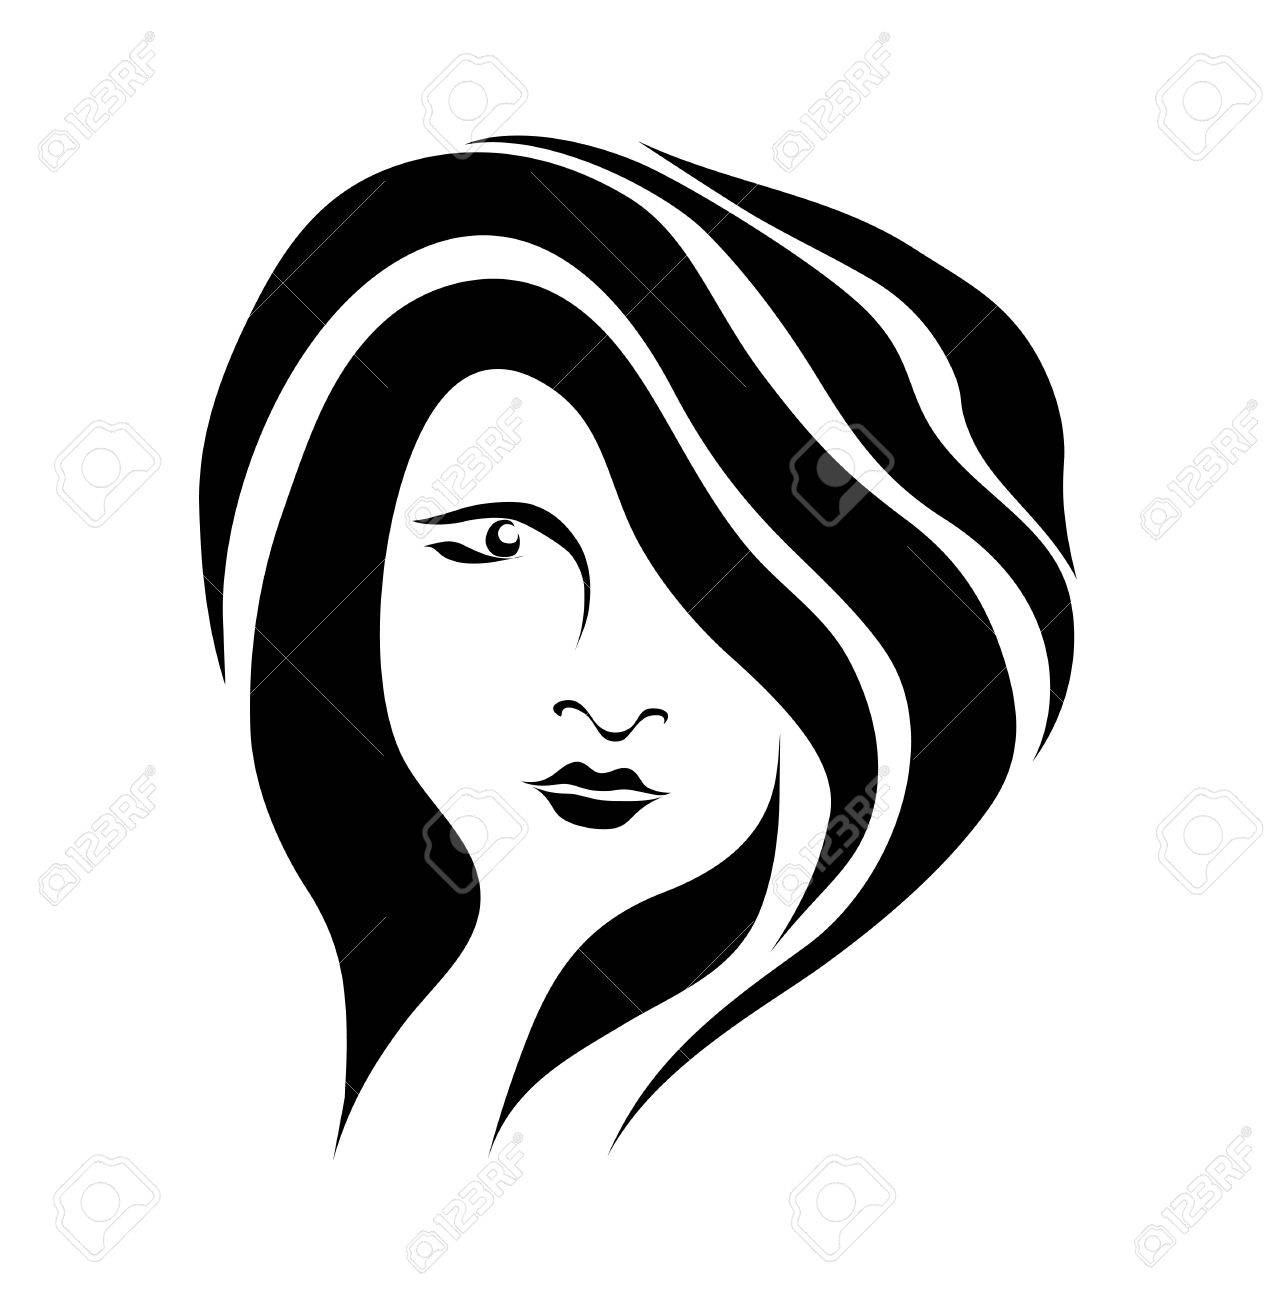 Free hand drawing abstract face of beautiful romantic girl isolated on white background Stock Vector - 14298504